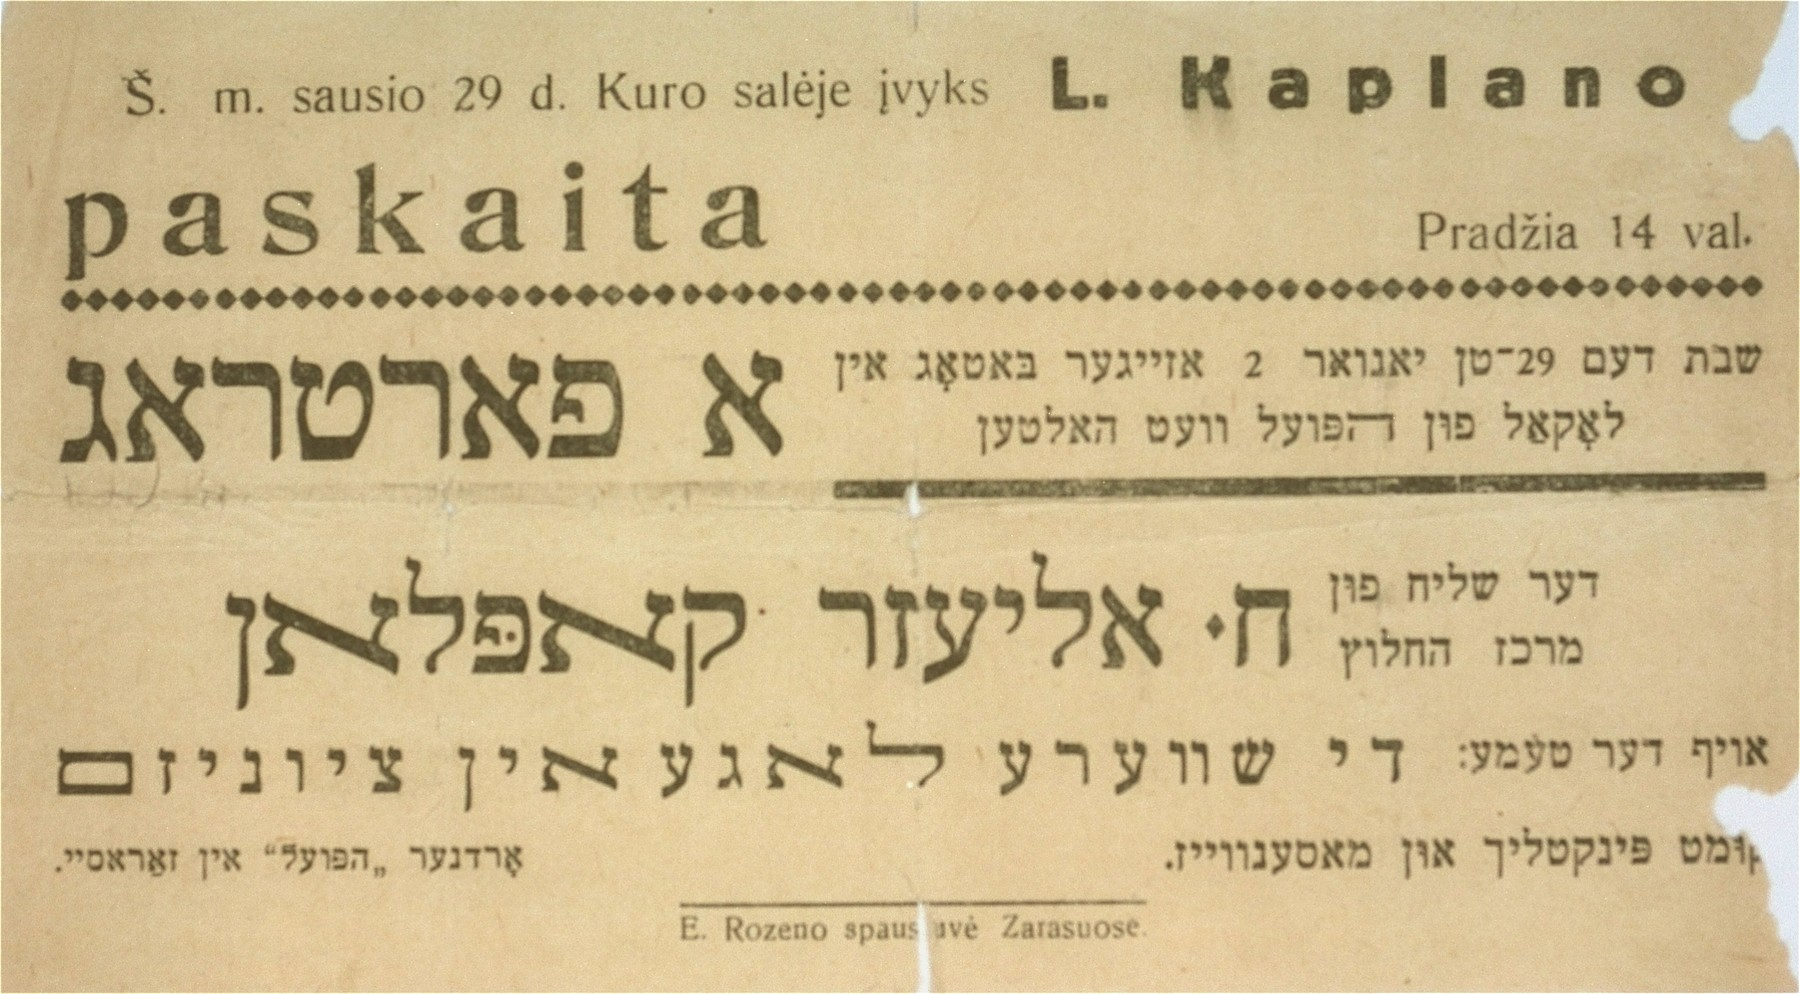 """Newspaper notice in Lithuanian and Yiddish, advertising a lecture on """"The Difficult Situation in Zionism"""" to be given by Eliezer Kaplan, the representative of the central organization of the Hehalutz. The lecture will take place on Saturday, January 29 at 2:00 P.M. in Zarasai."""